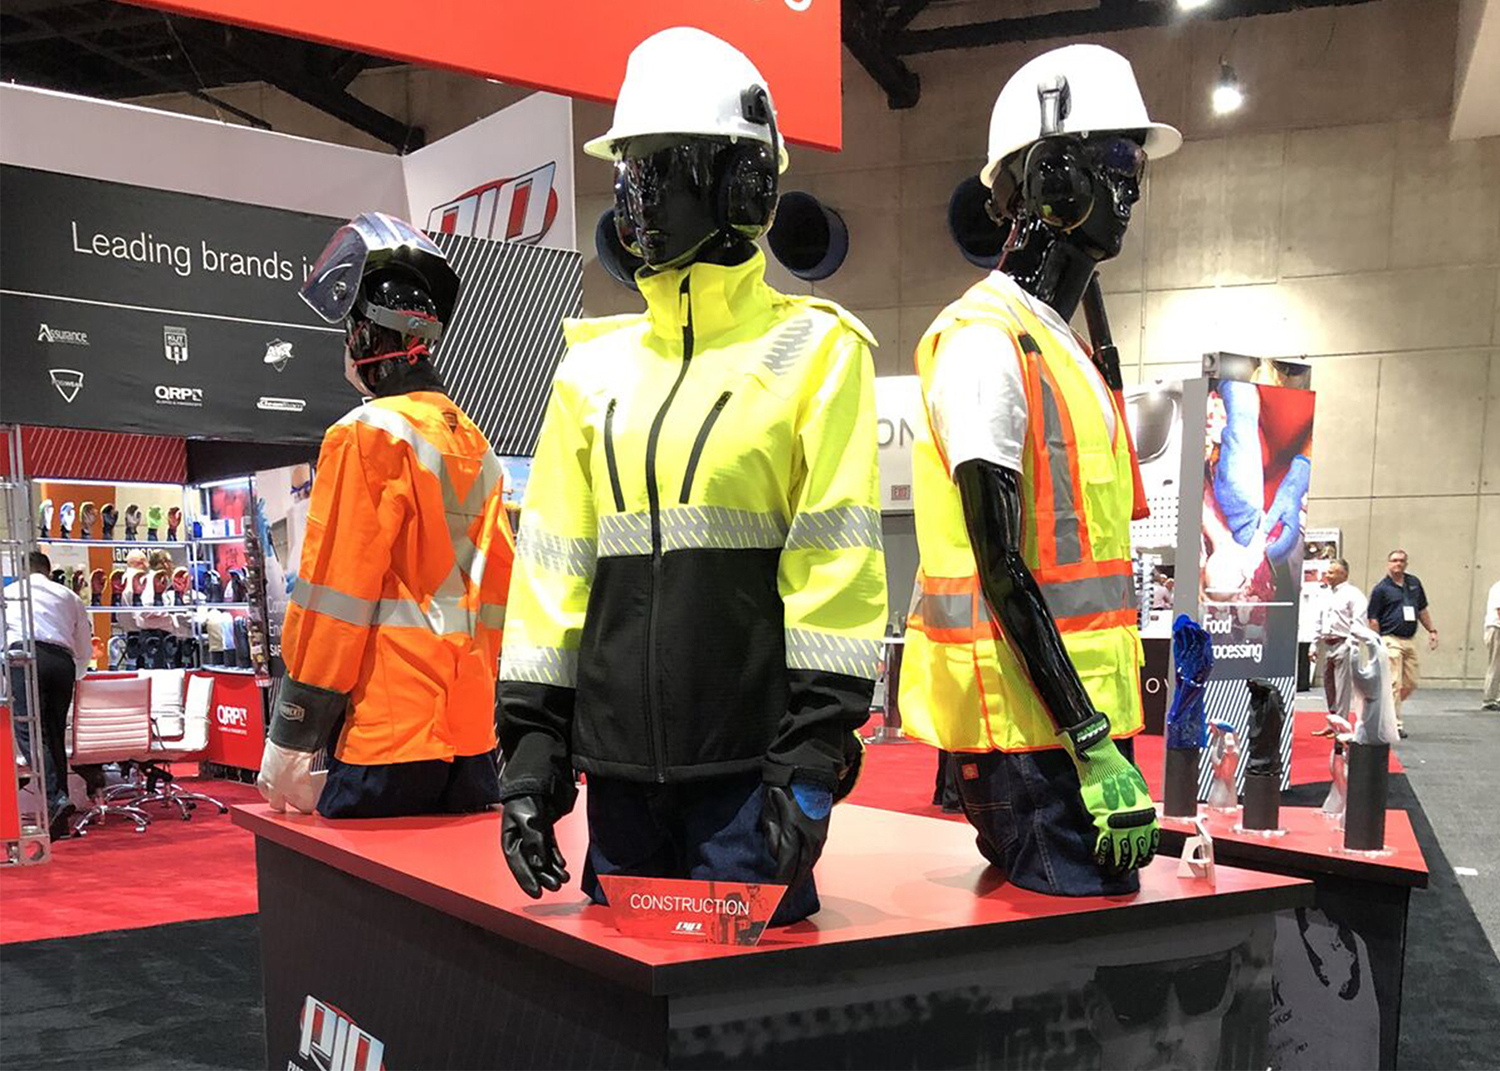 Trade show exhibit booth with PIP construction worker mannequins mounted to red and black angled tables